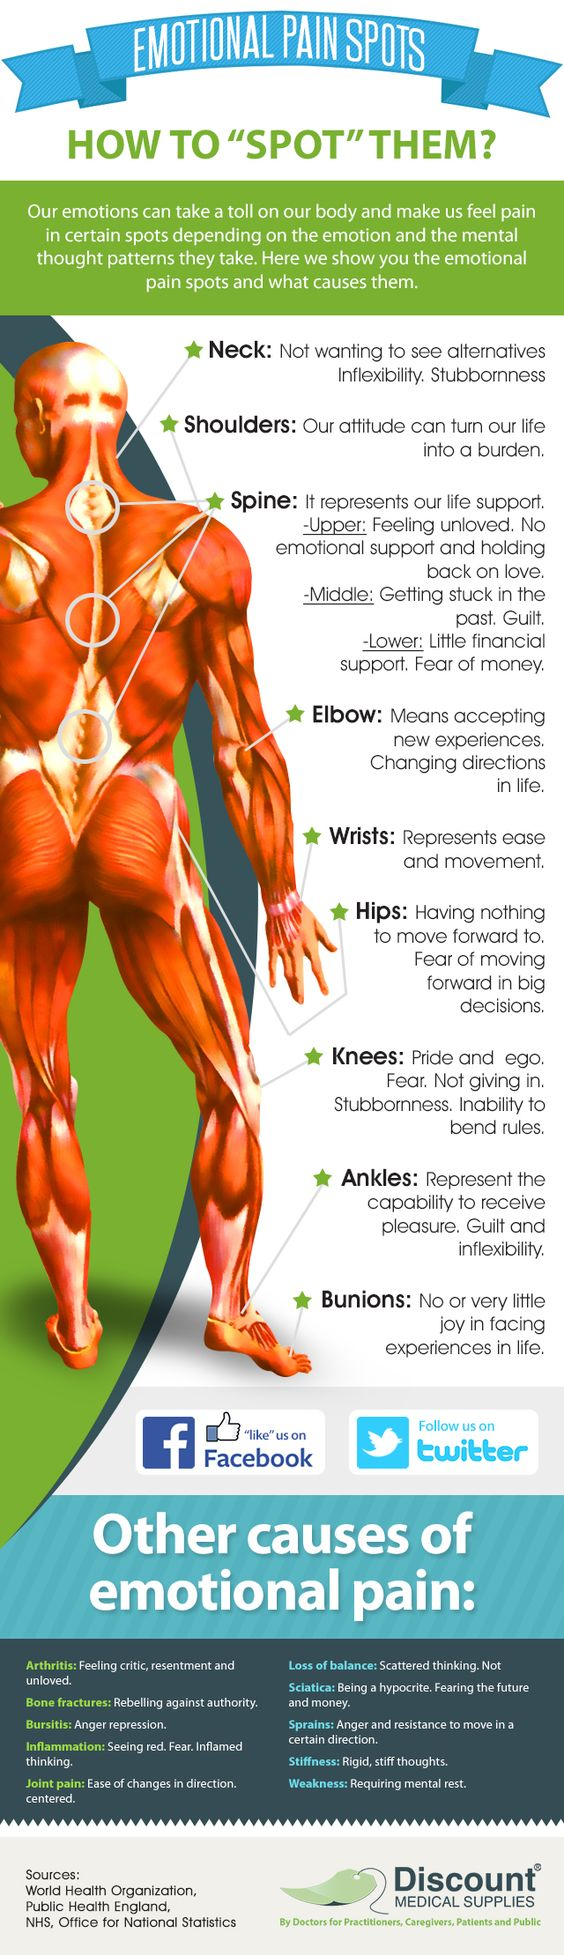 "Emotional Pain Spots... How to ""Spot"" them? #painrelief #painmanagement https://www.discountmedicalsupplies.com/doctors/health-news/positive-vs-negative-how-both-affect-our-health:"